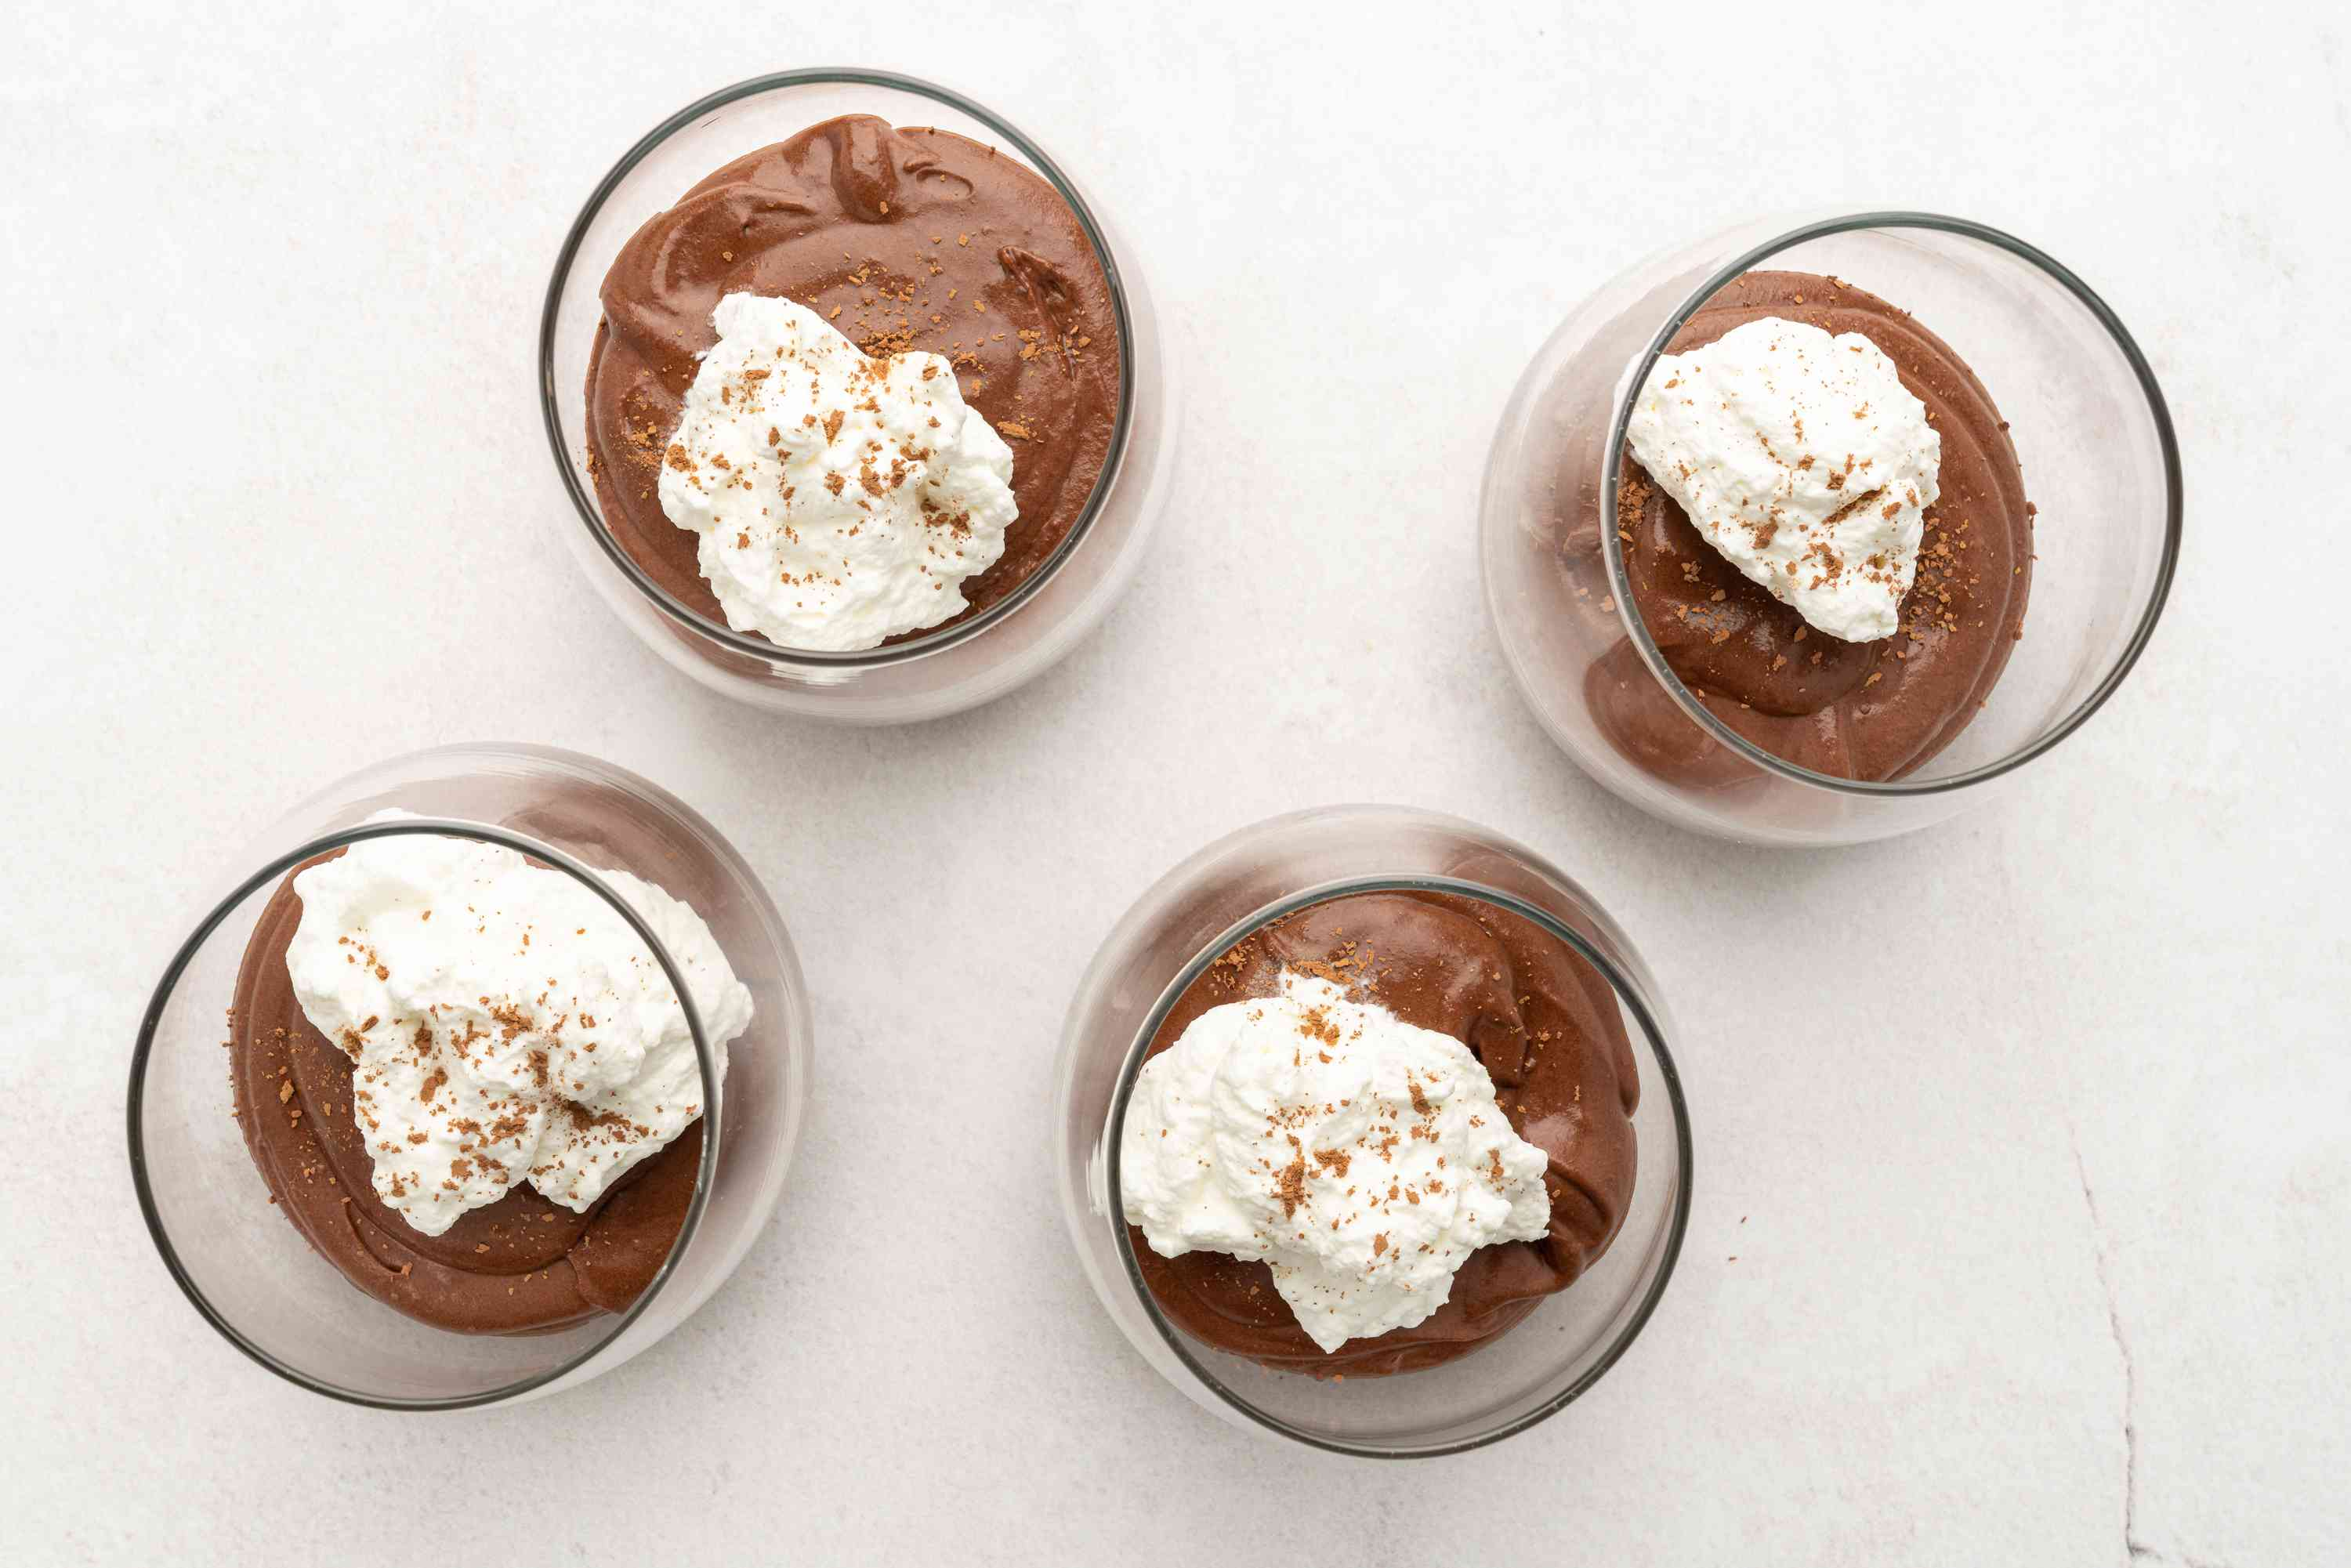 Make Sugar-Free Chocolate Mousse in glasses